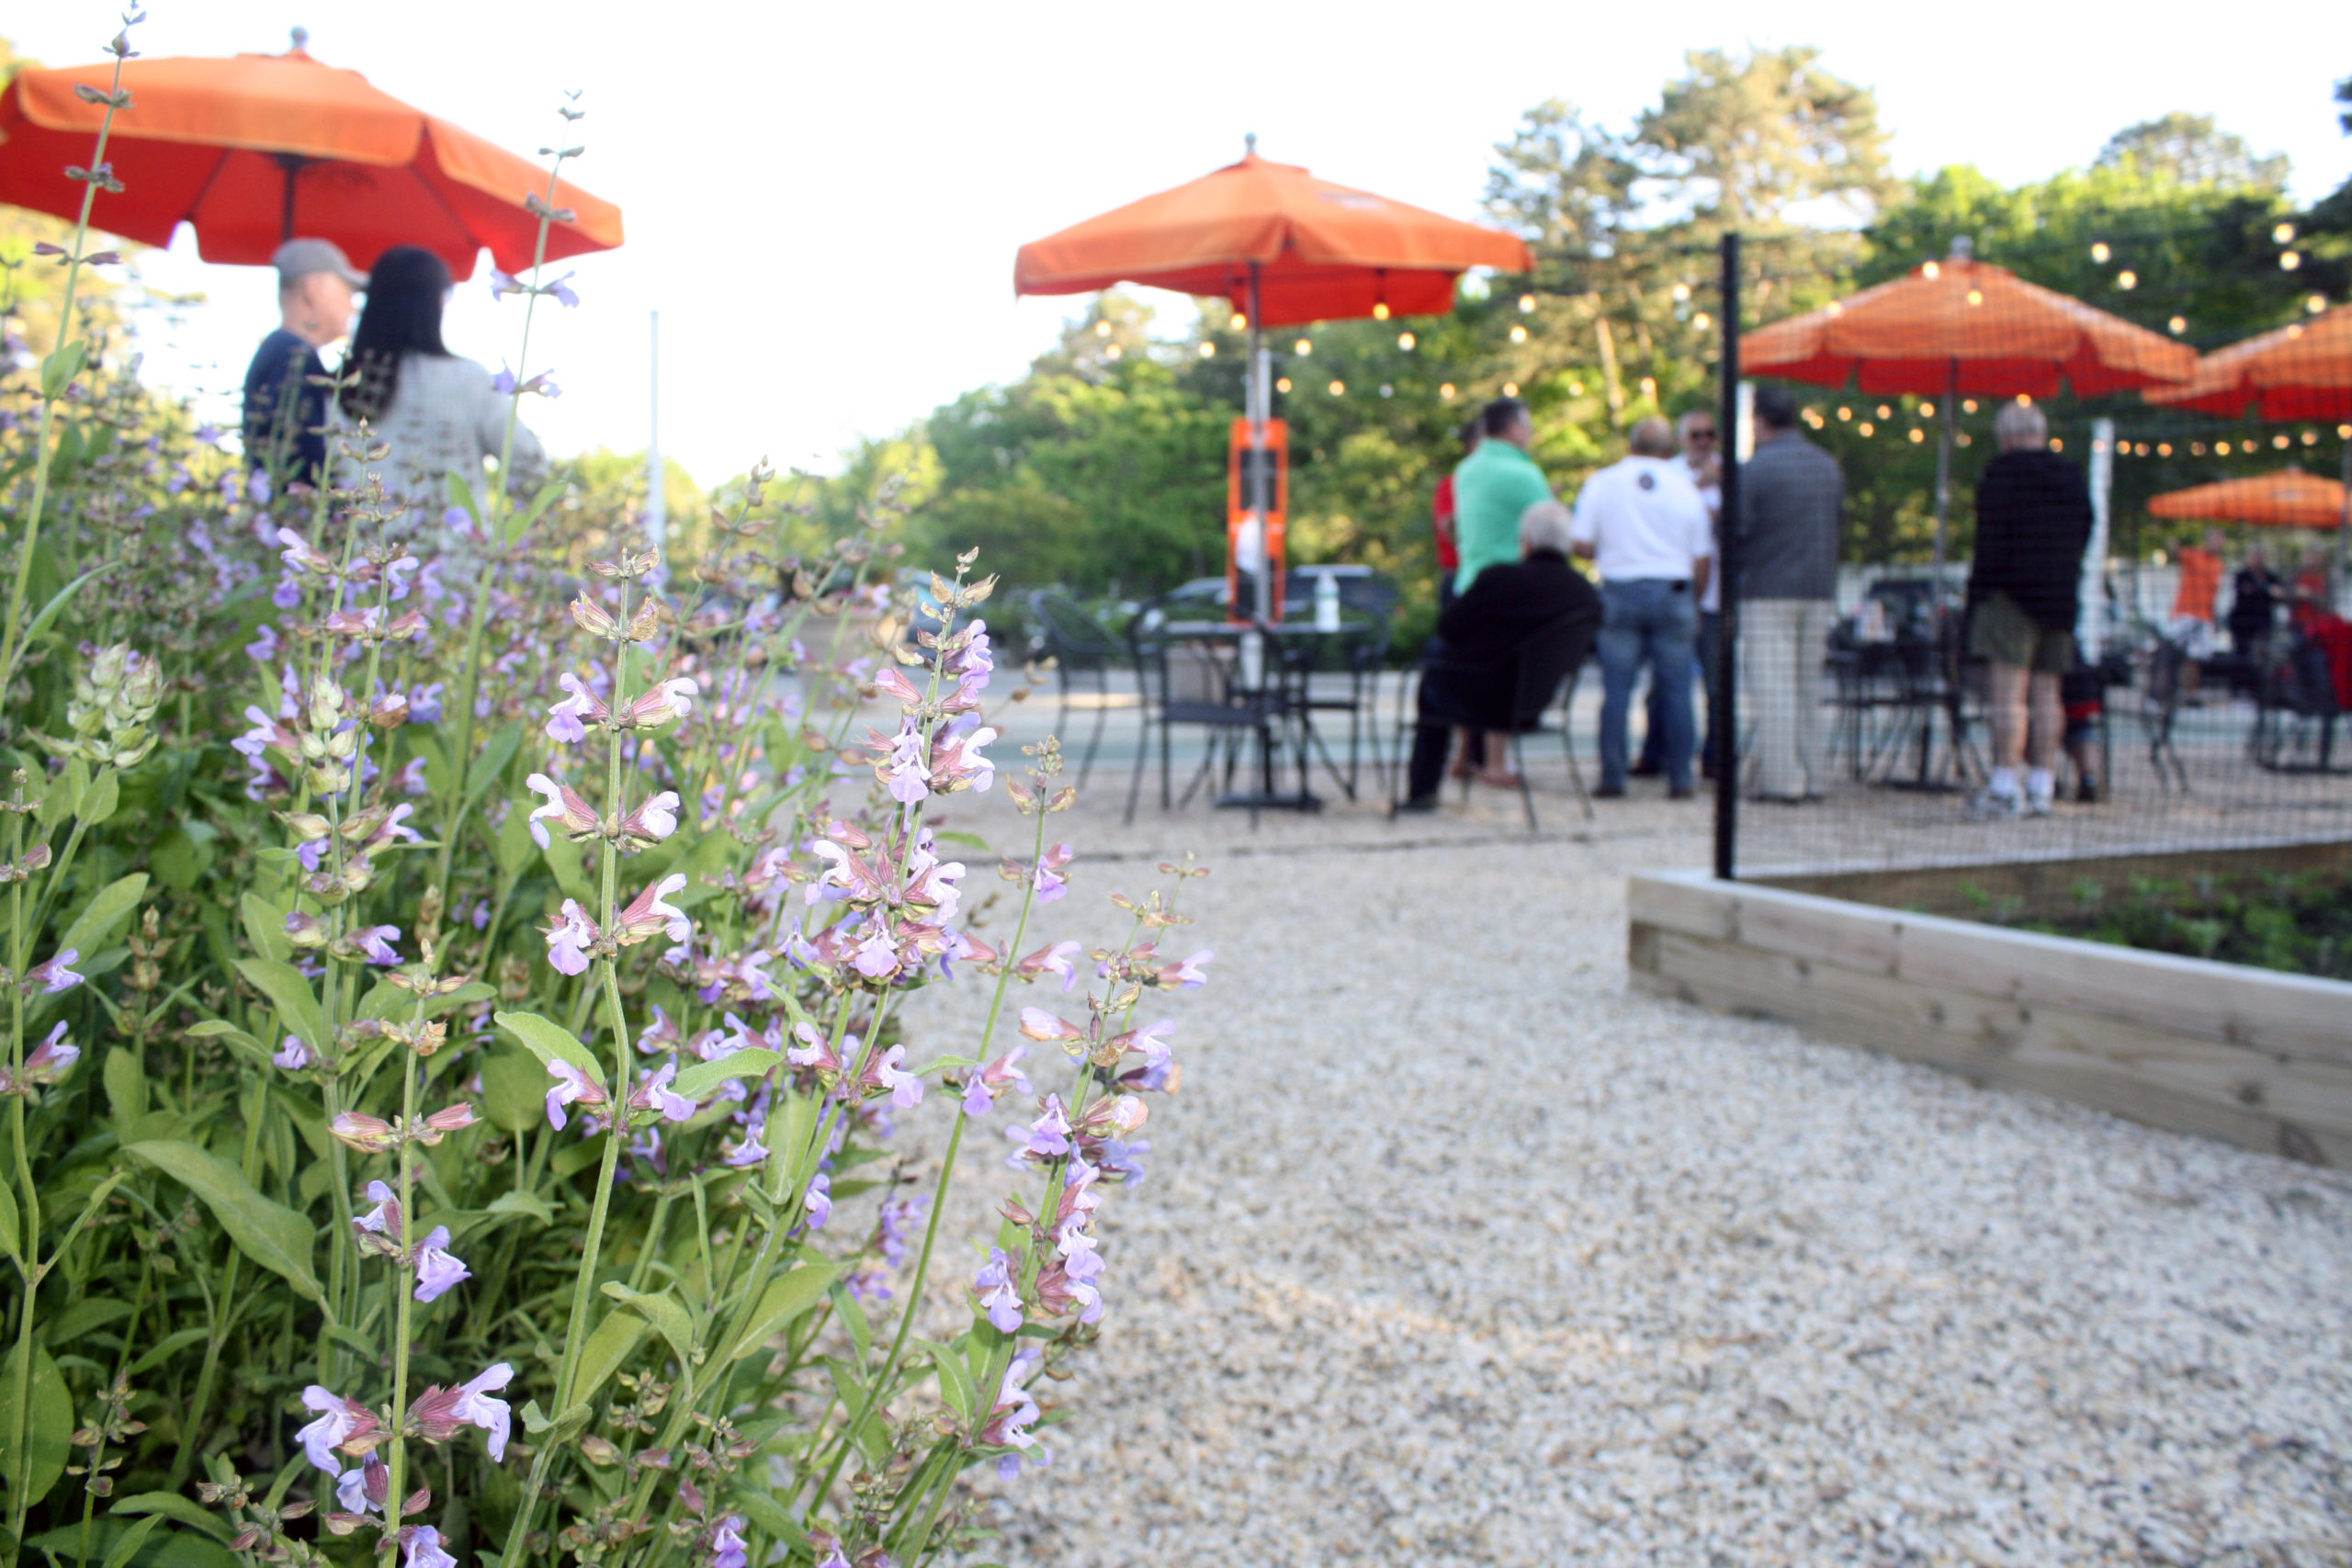 Lavender growing in Centro Trattoria & Bar's new outdoor dining area.